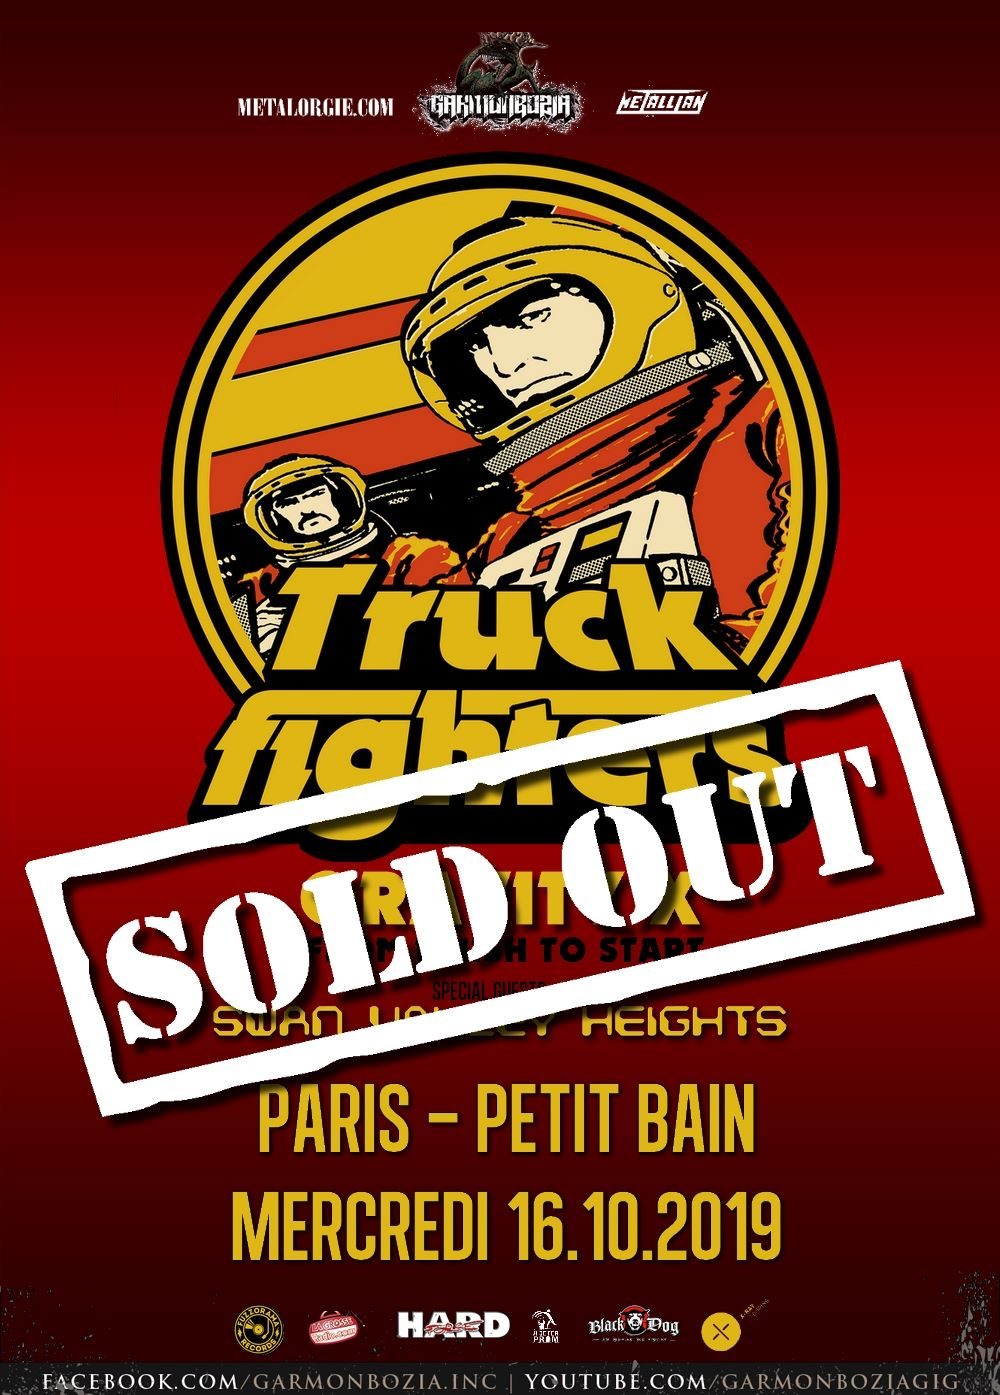 Truckfighters + Swan Valley Heights @ Petit Bain (Paris), le 16 Octobre 2019